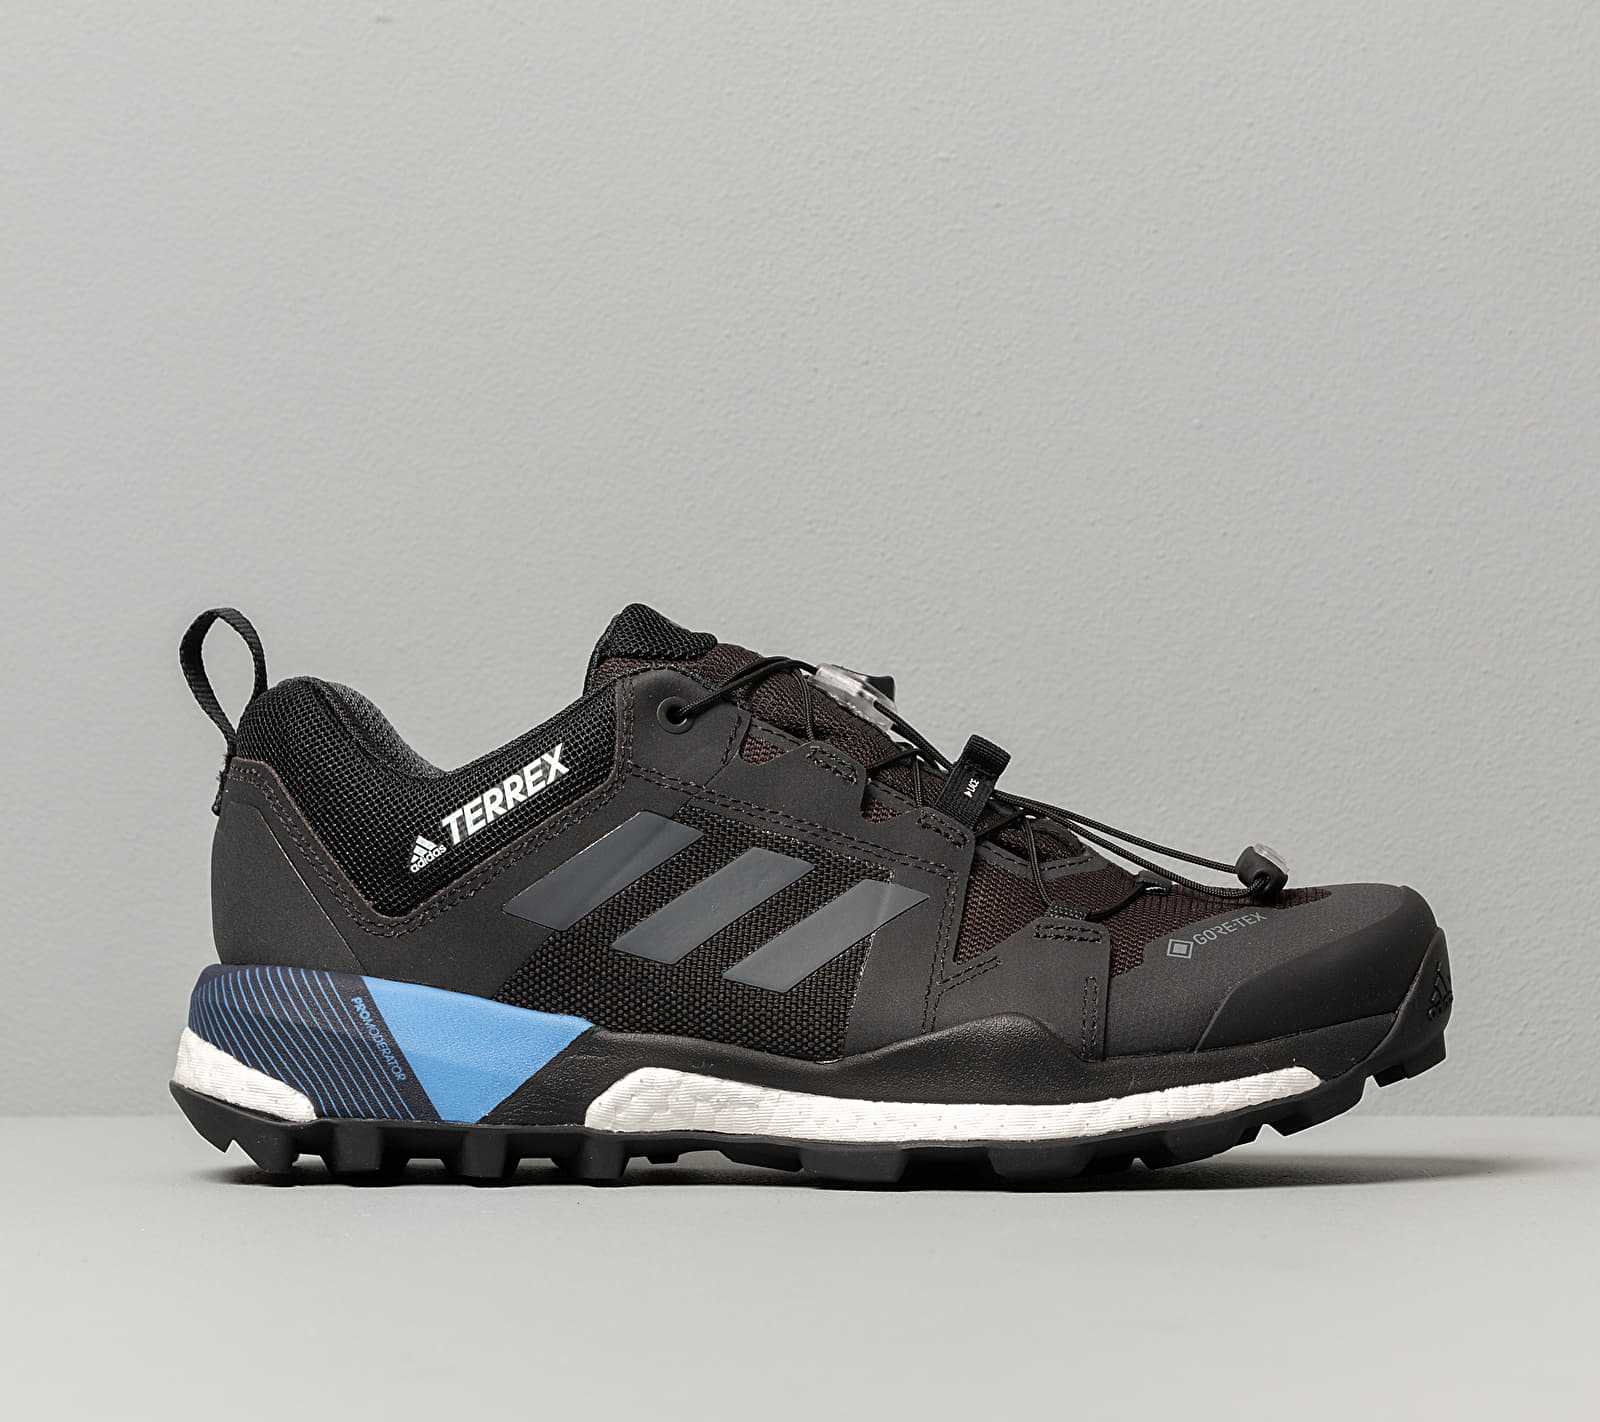 adidas Terrex Skychaser XT GTX W Core Black/ Grey Four/ Real Blue